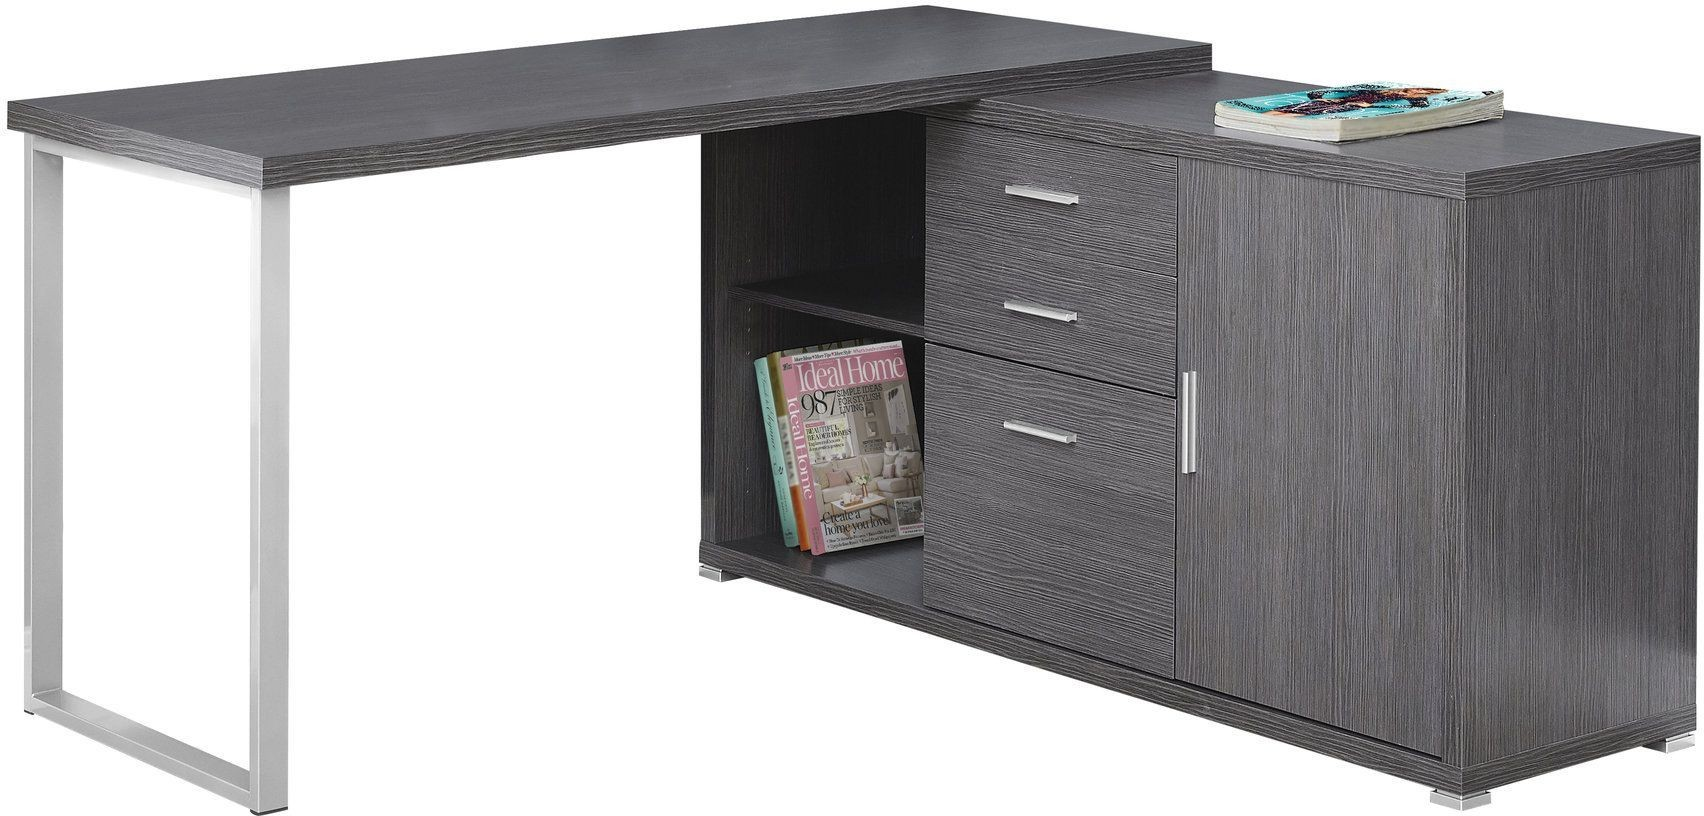 60 Grey Computer Desk from Monarch  Coleman Furniture